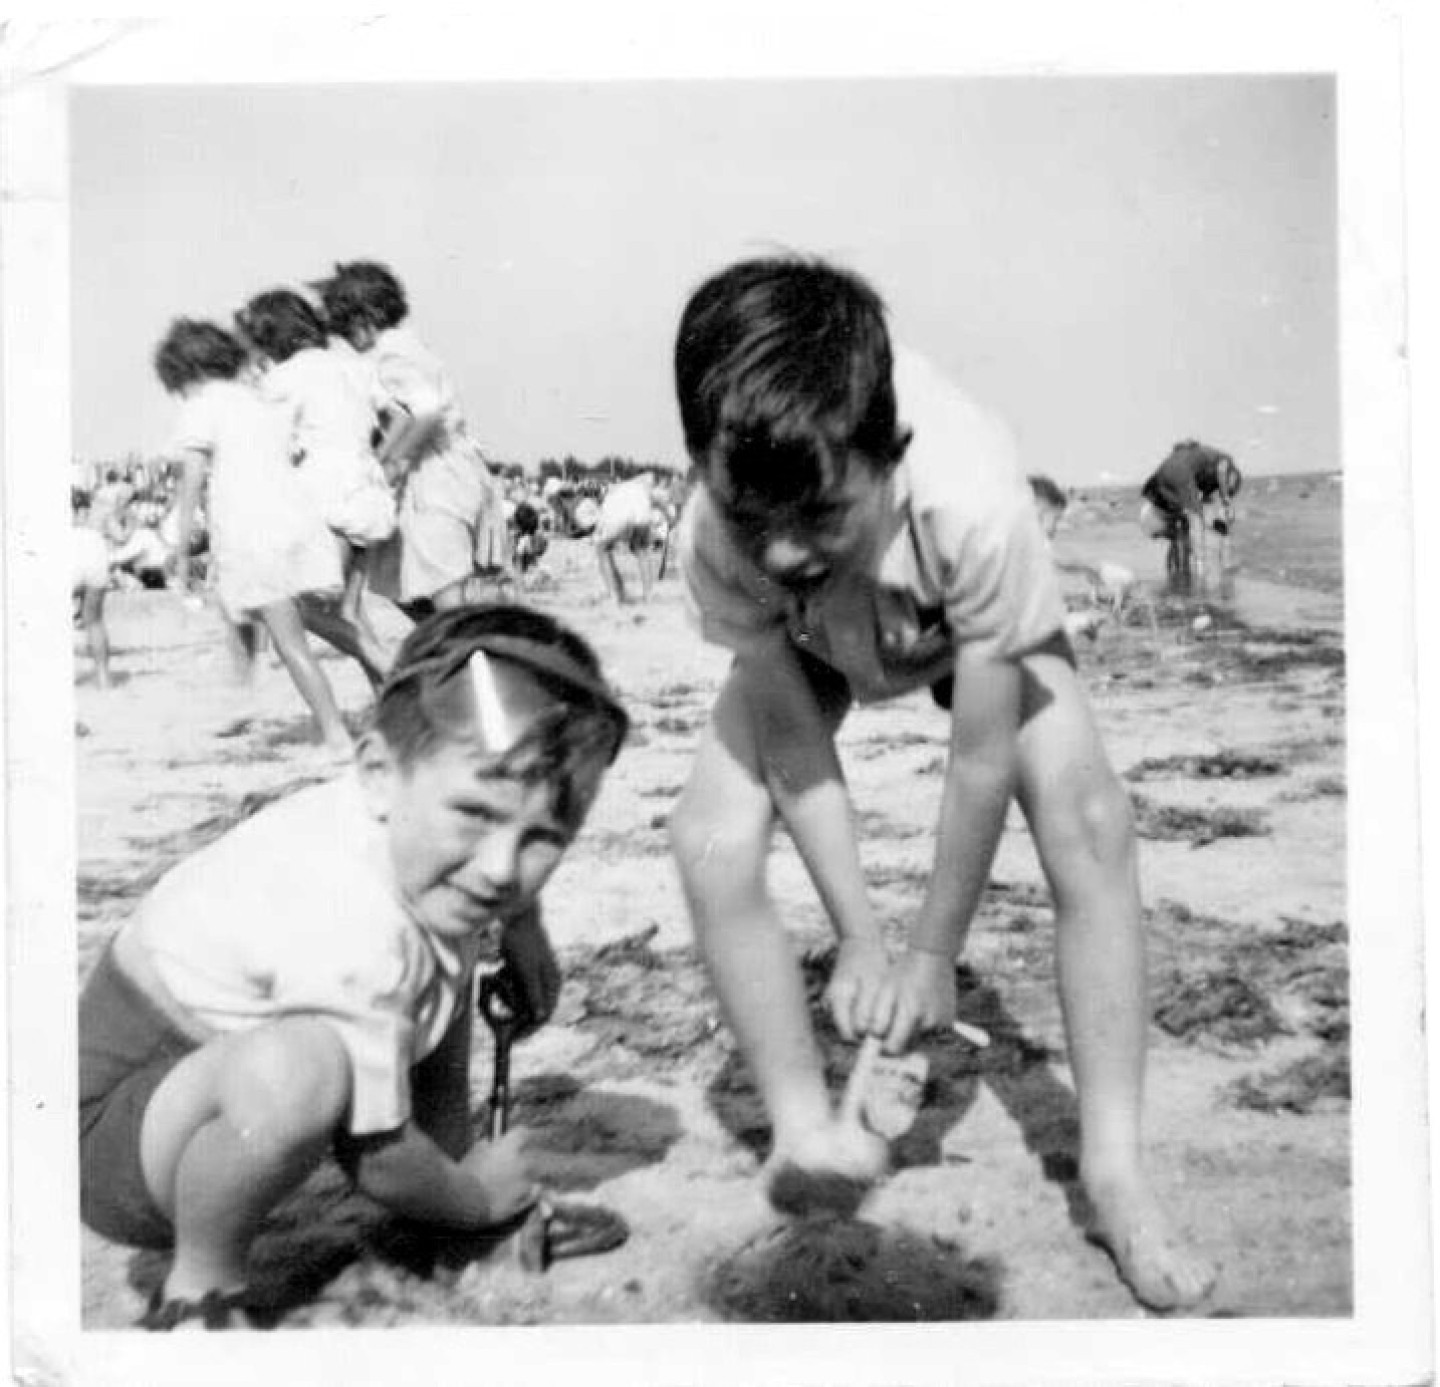 Ian and David on beach